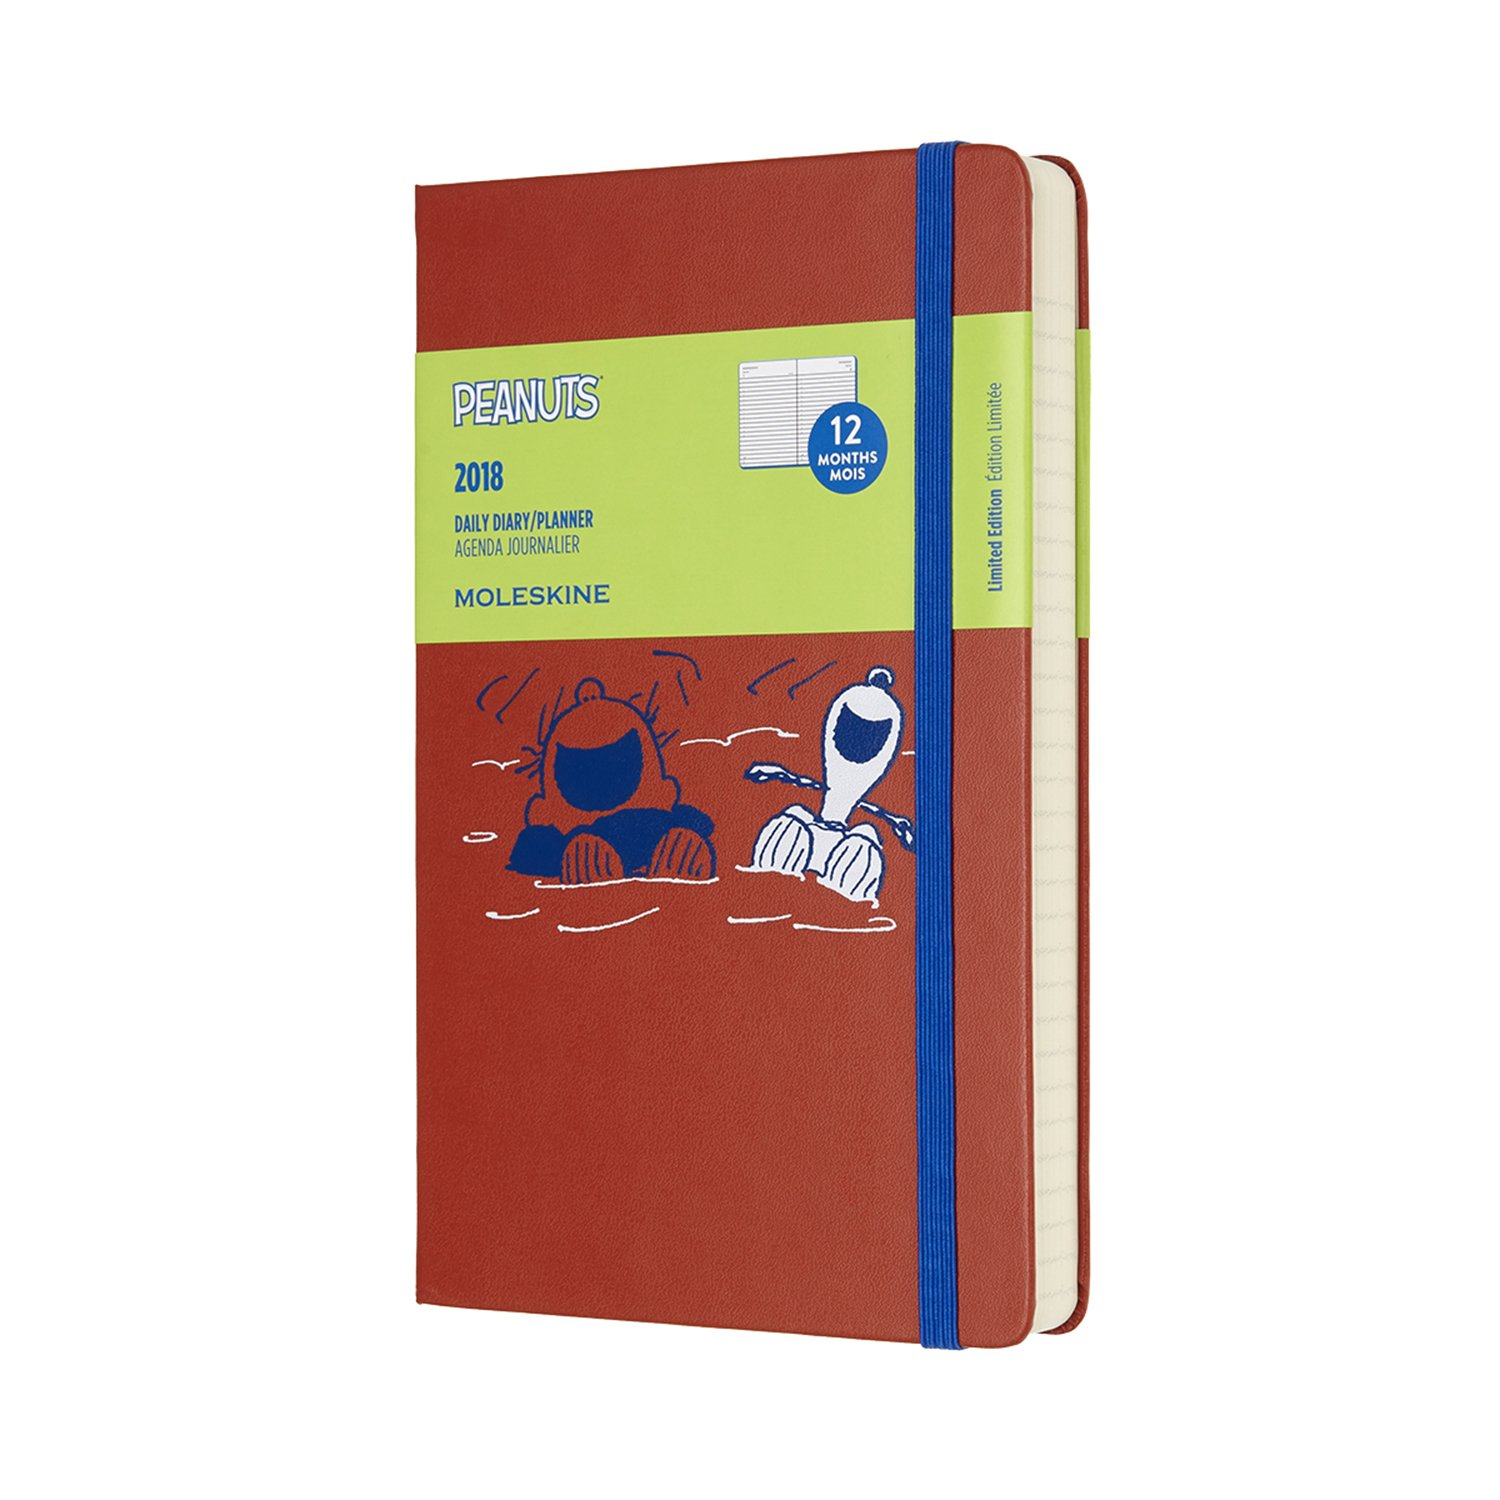 Moleskine Limited Edition Peanuts, 12 Month Daily Planner, Large, Red (5 x 8.25)